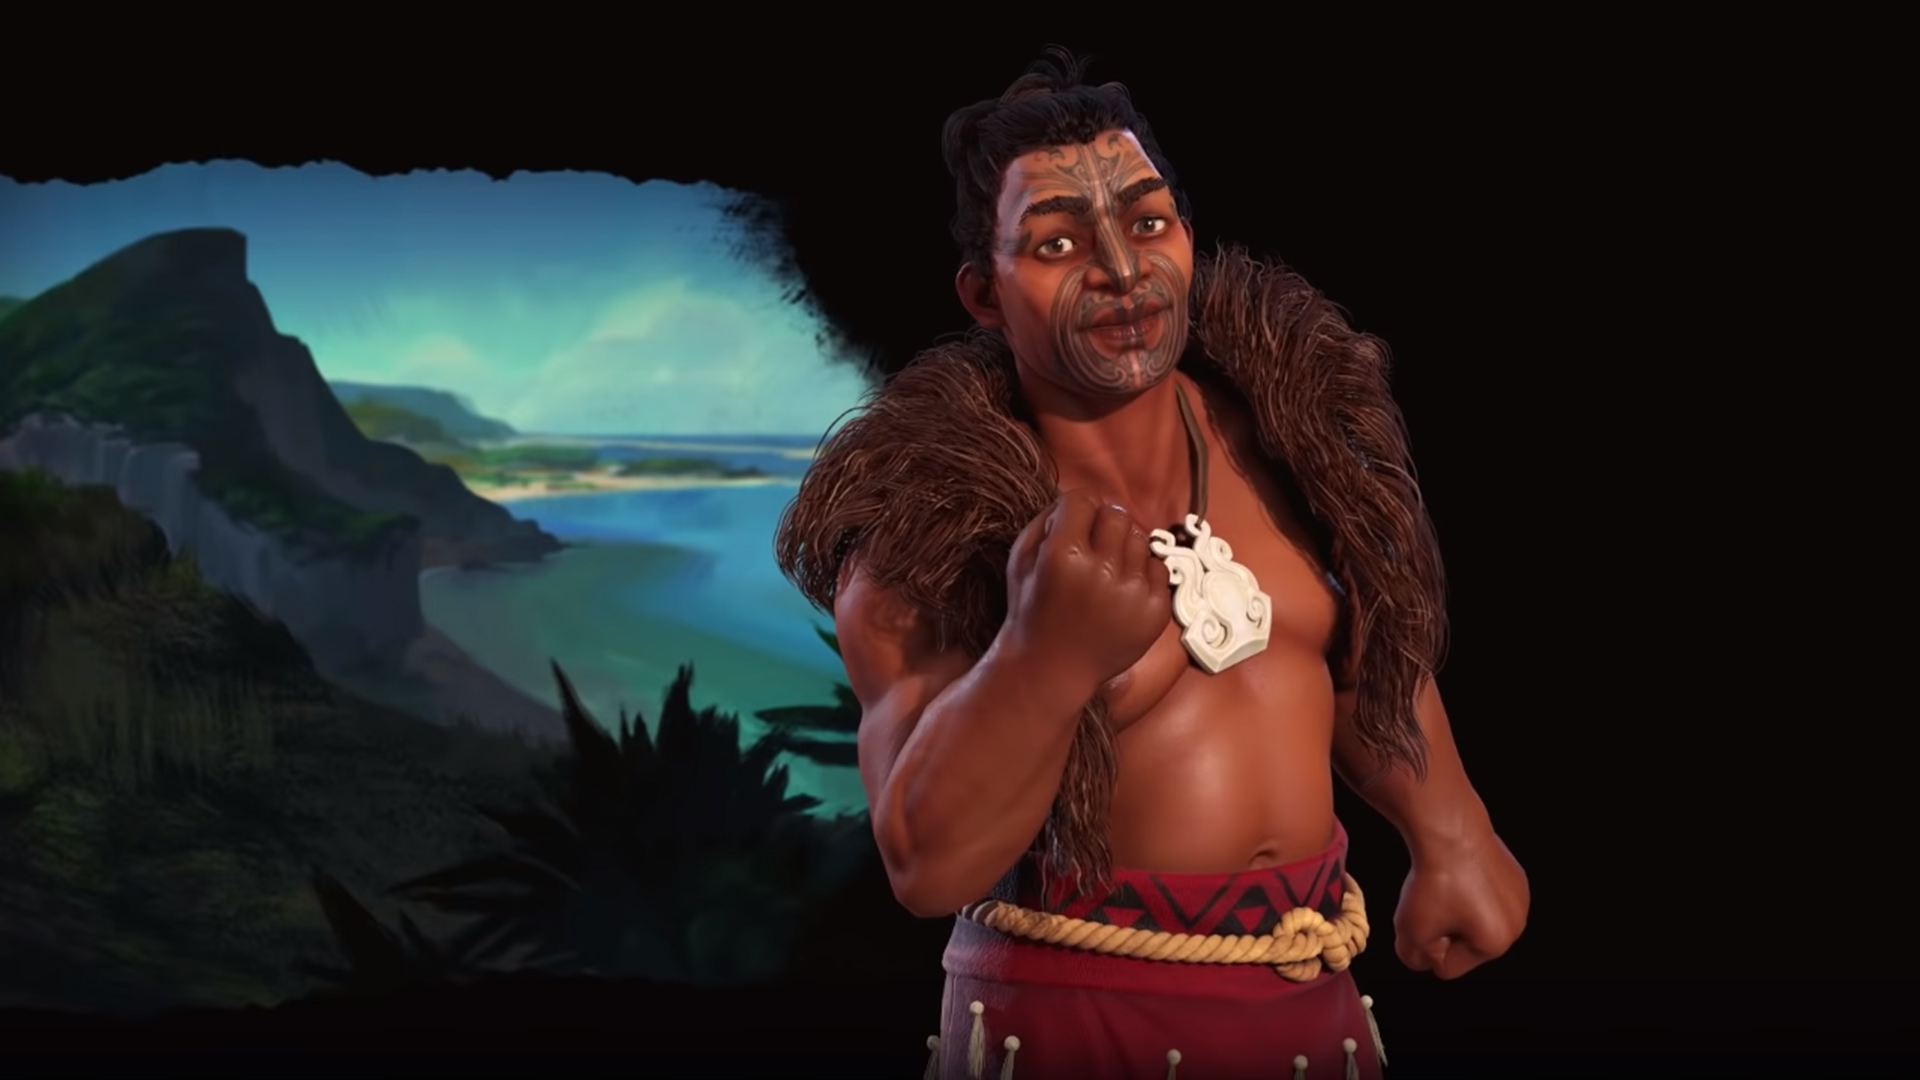 A Civilization 6 bug can make leaders nude, and reveals they don't have bits